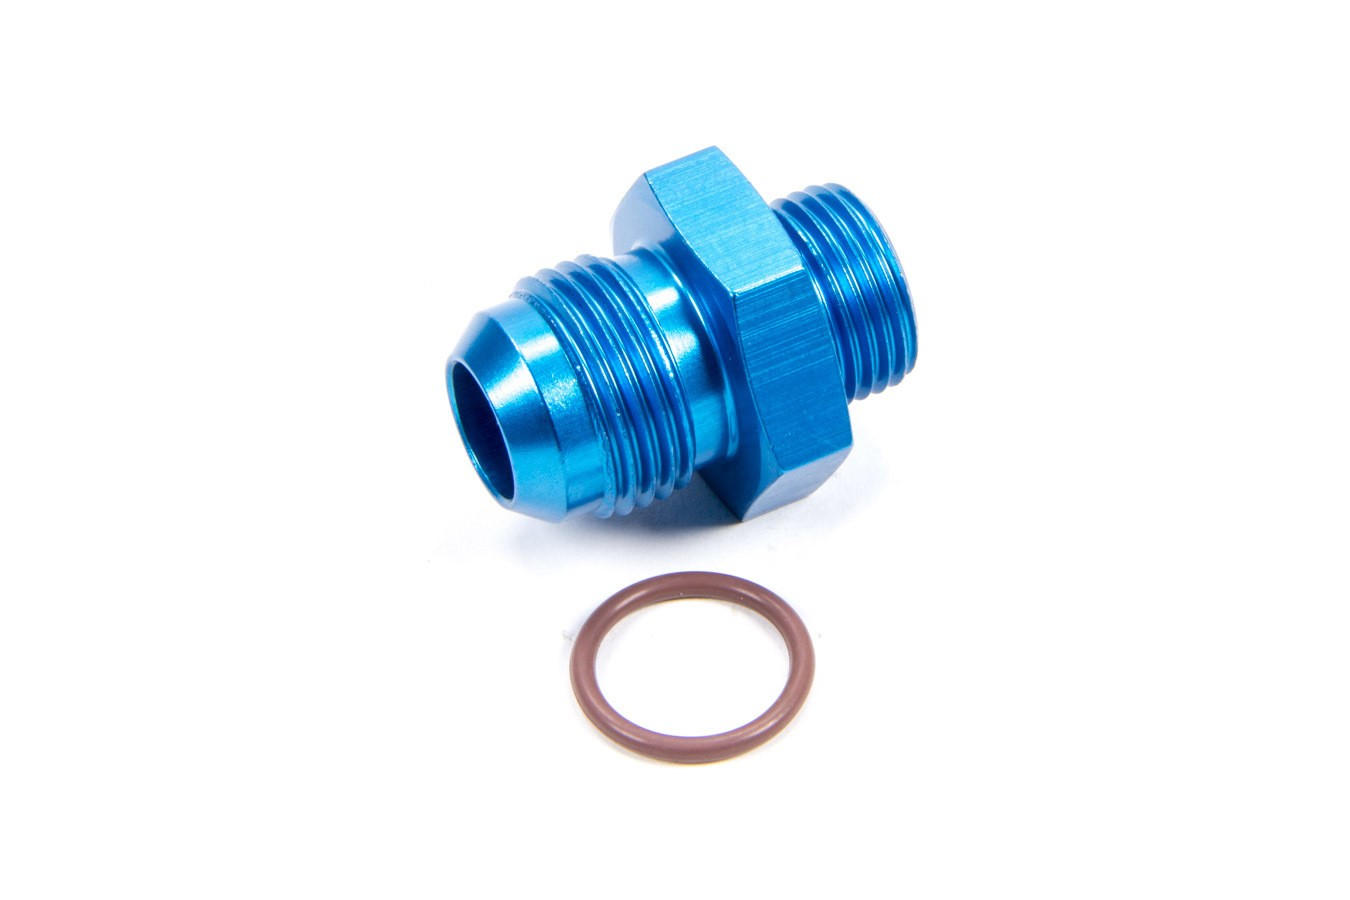 Fragola 495105 Fitting, Adapter, Straight, 8 AN Male O-Ring to 10 AN Male, Aluminum, Blue Anodize, Each